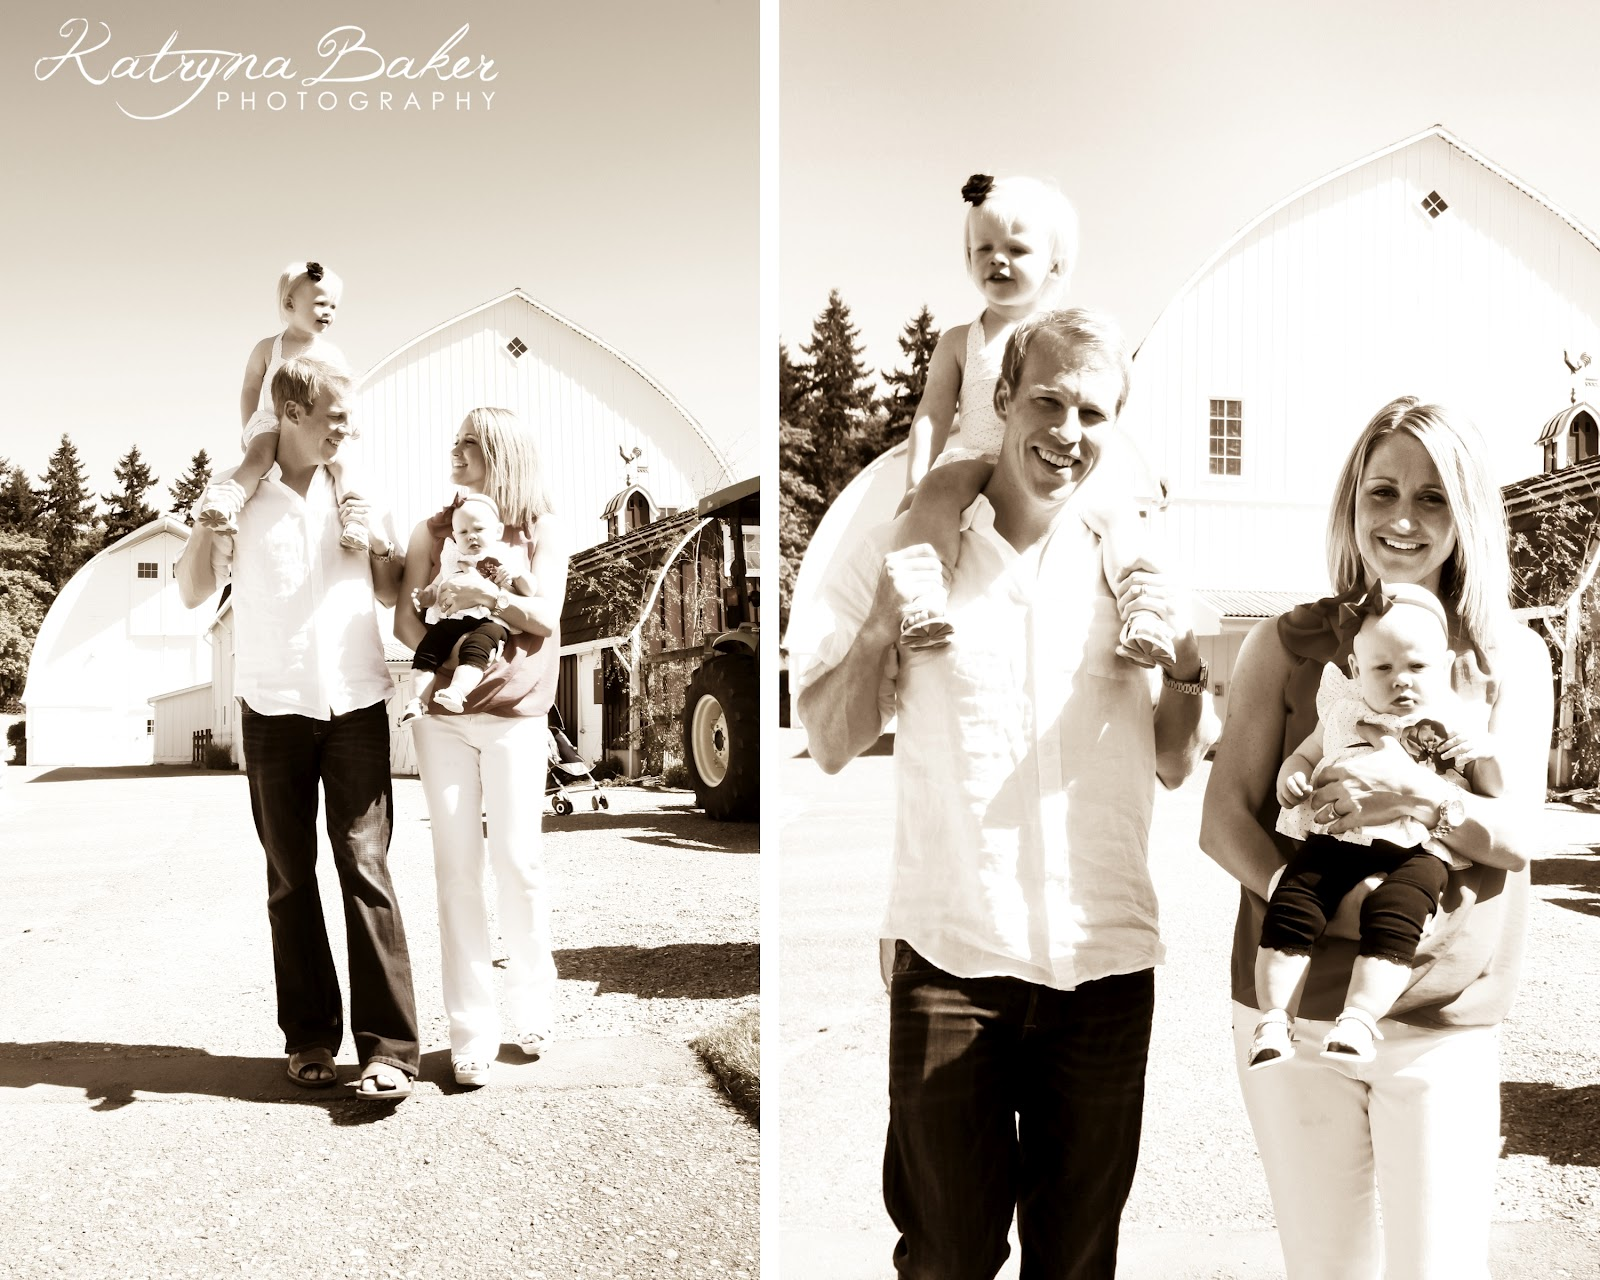 Briscoe Family Photos – Katryna Baker Photography